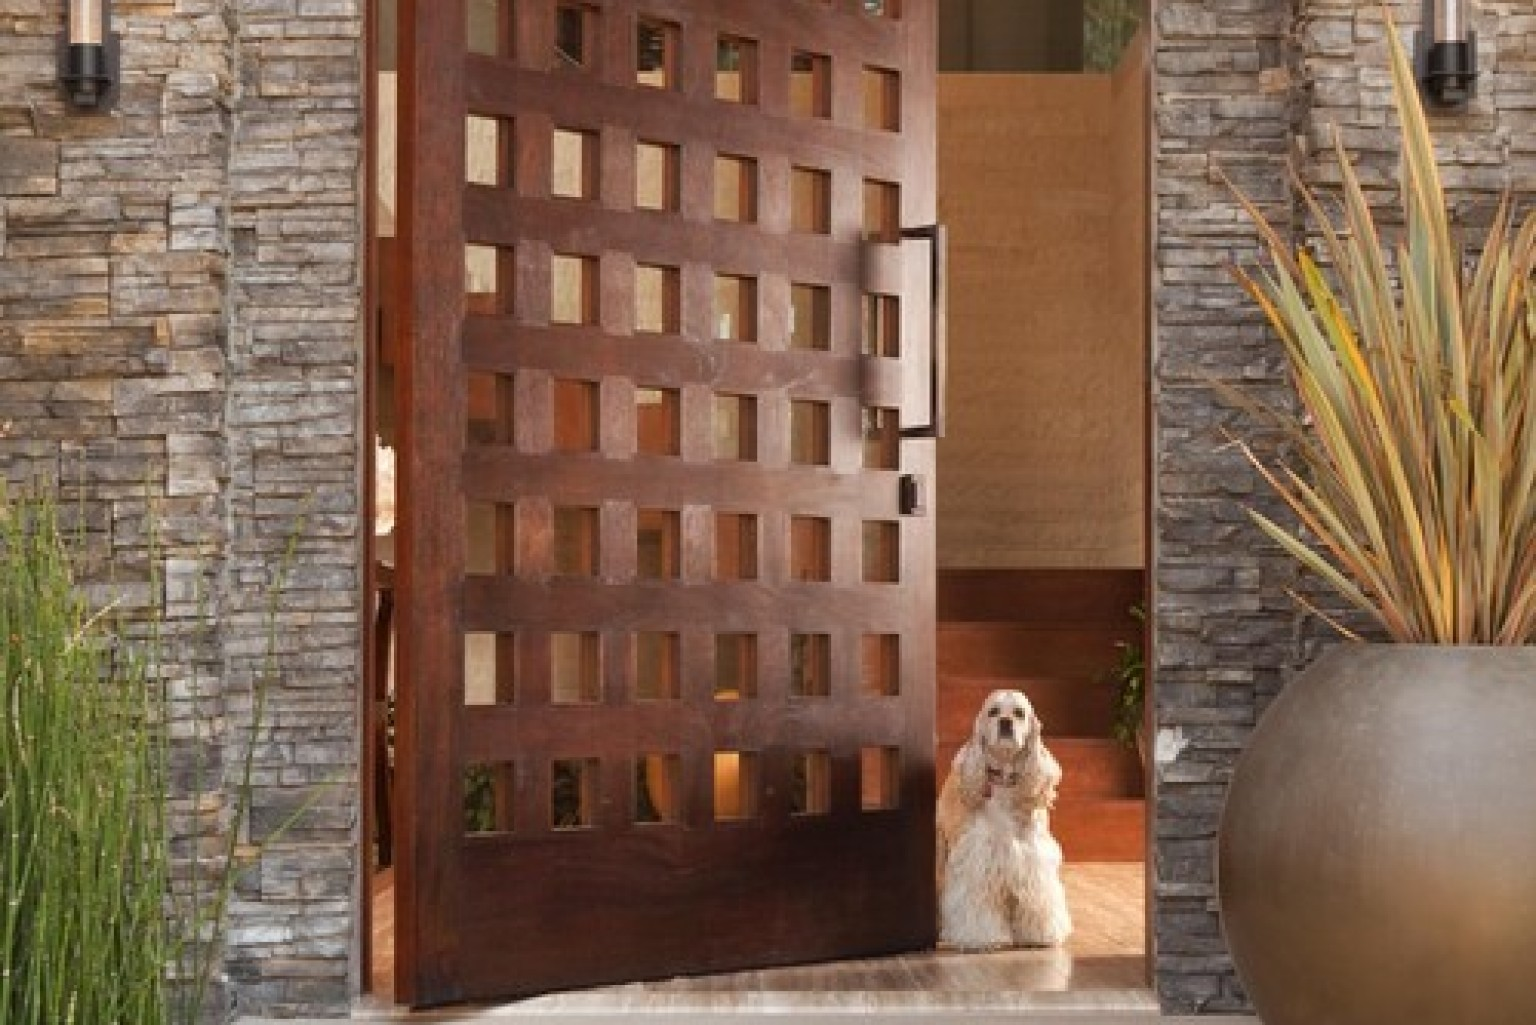 Main Doors Design popular entrance doors designs awesome design ideas 12 Seriously Cool Front Door Designs That Will Boost Your Curb Appeal Photos Huffpost